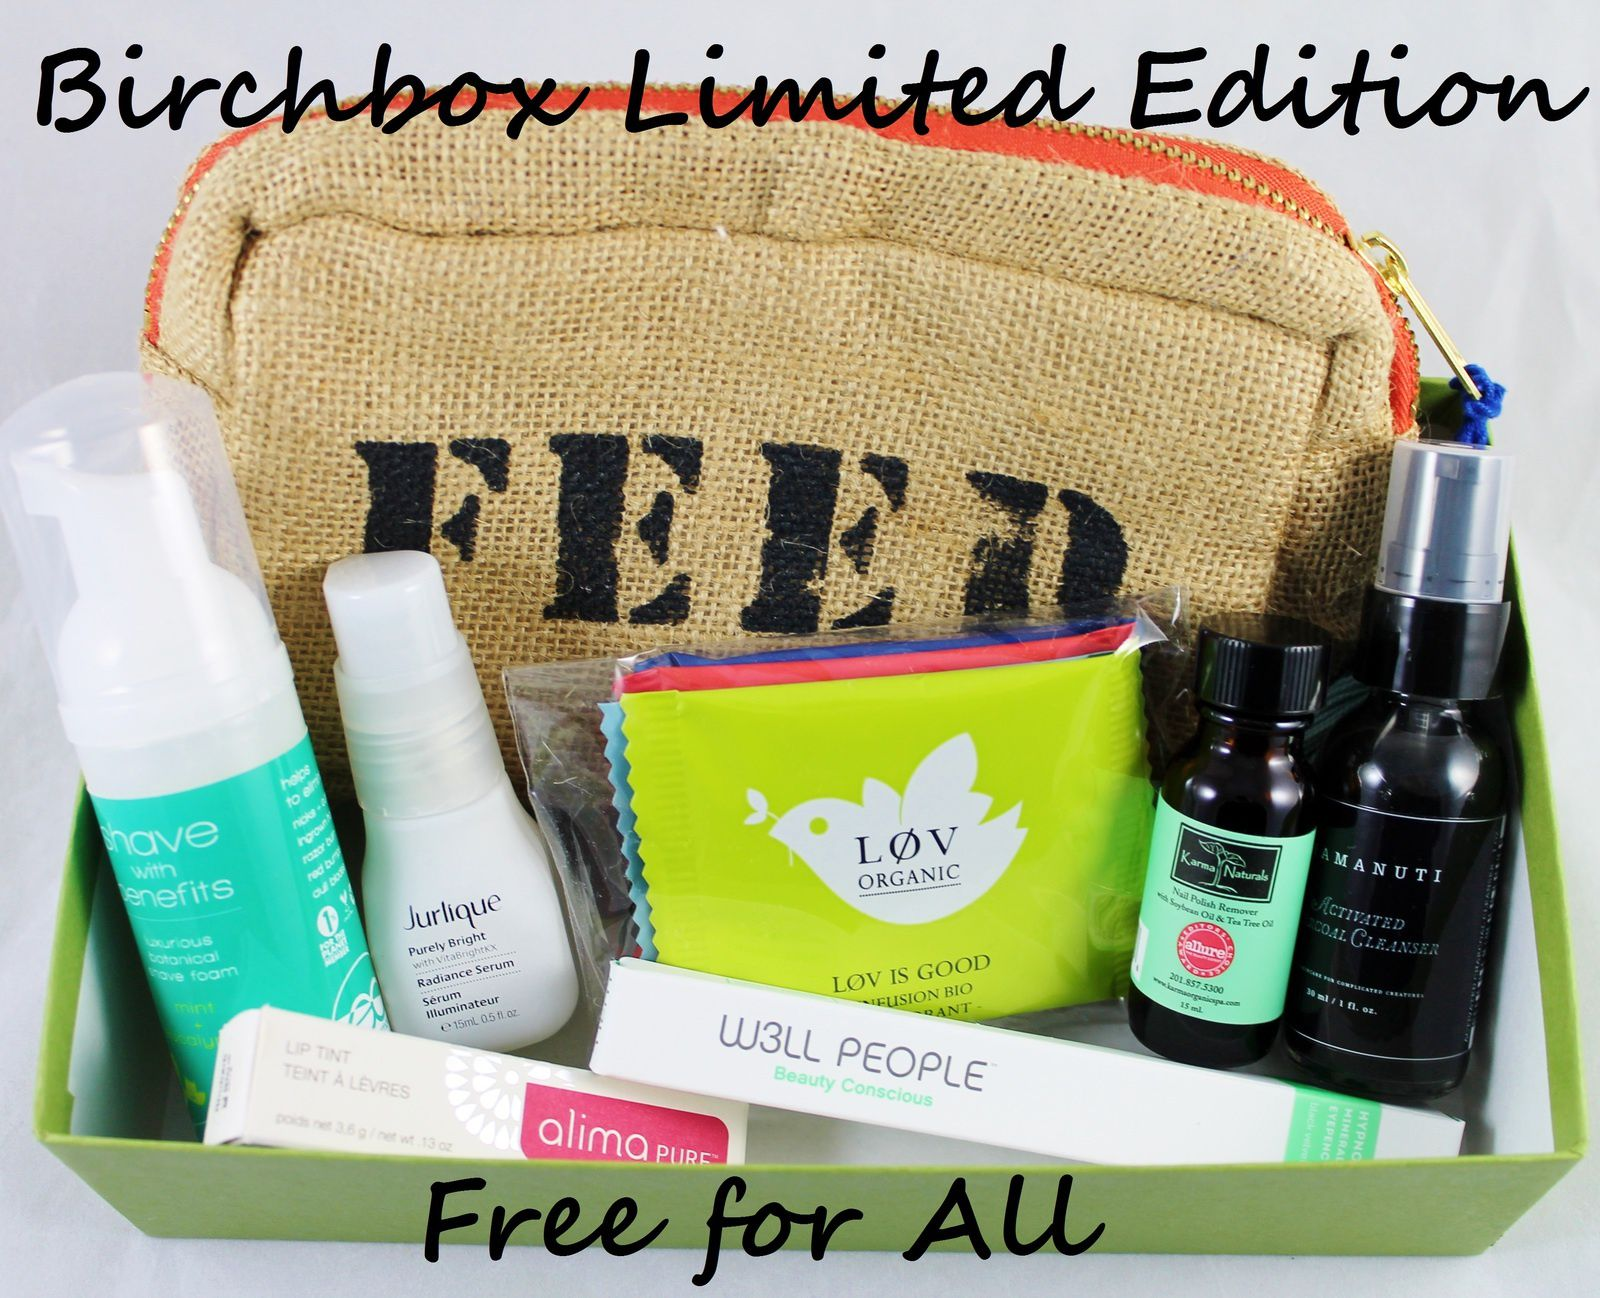 Birchbox Limited Edition: Free for All